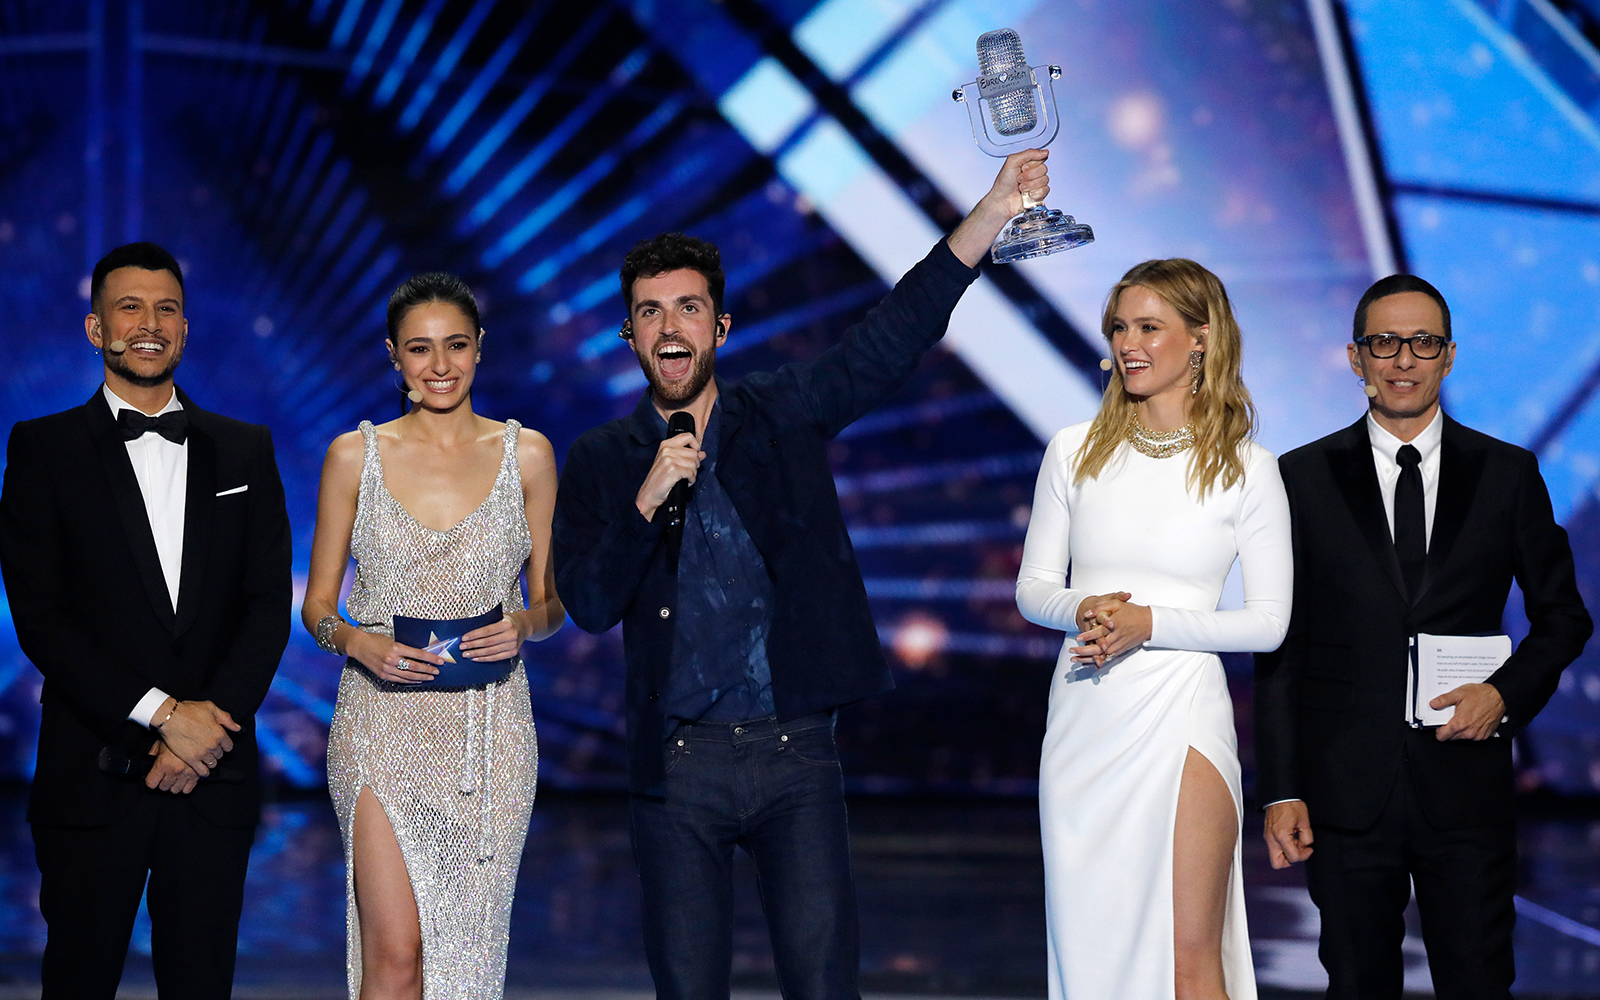 The Netherlands' Duncan Laurence Wins Eurovision Song Contest 2019 with